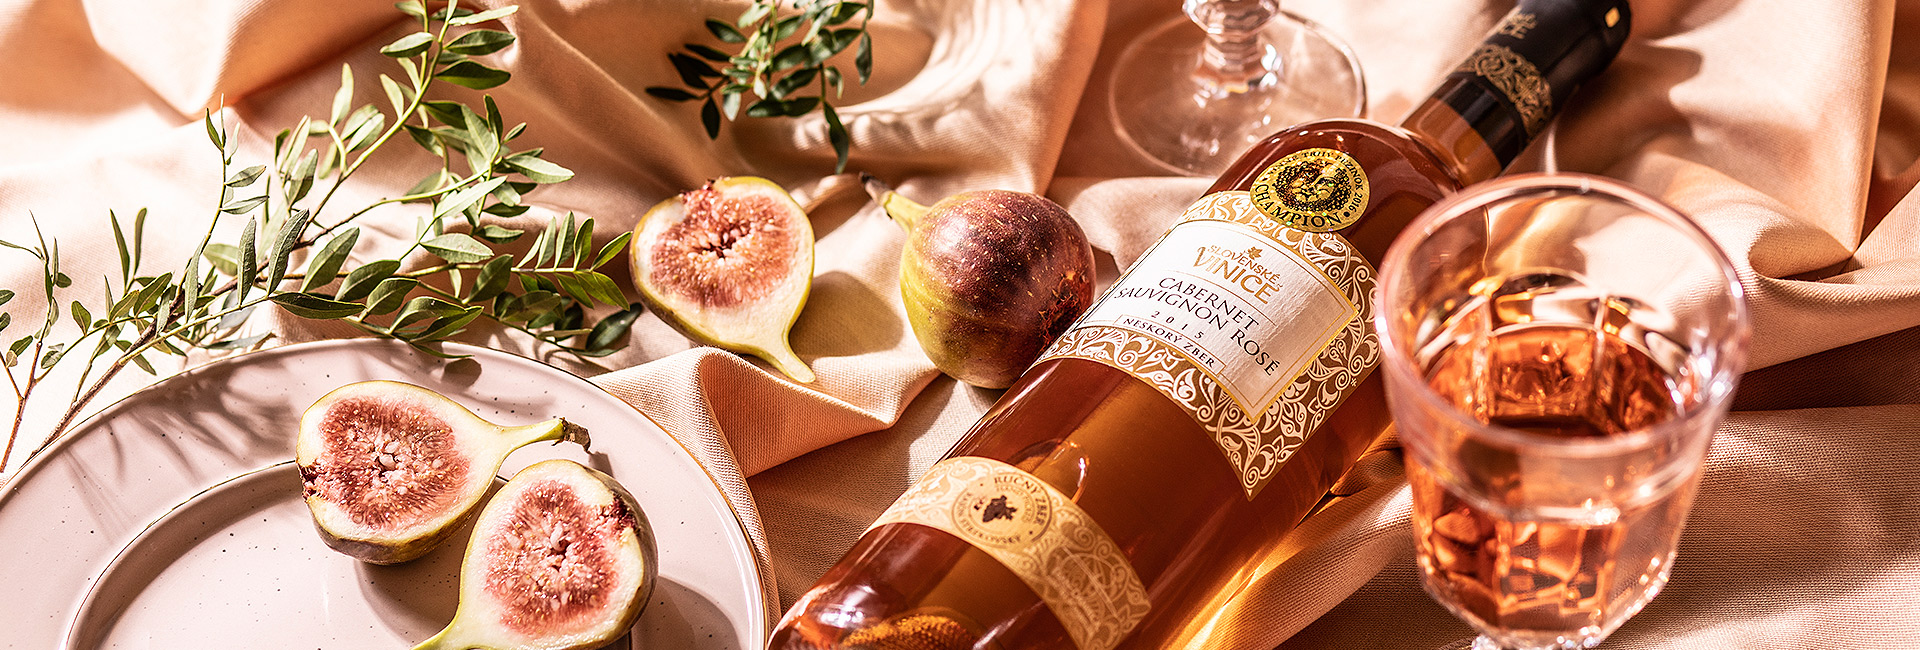 photography foodstyling wine slovenske vinice intro